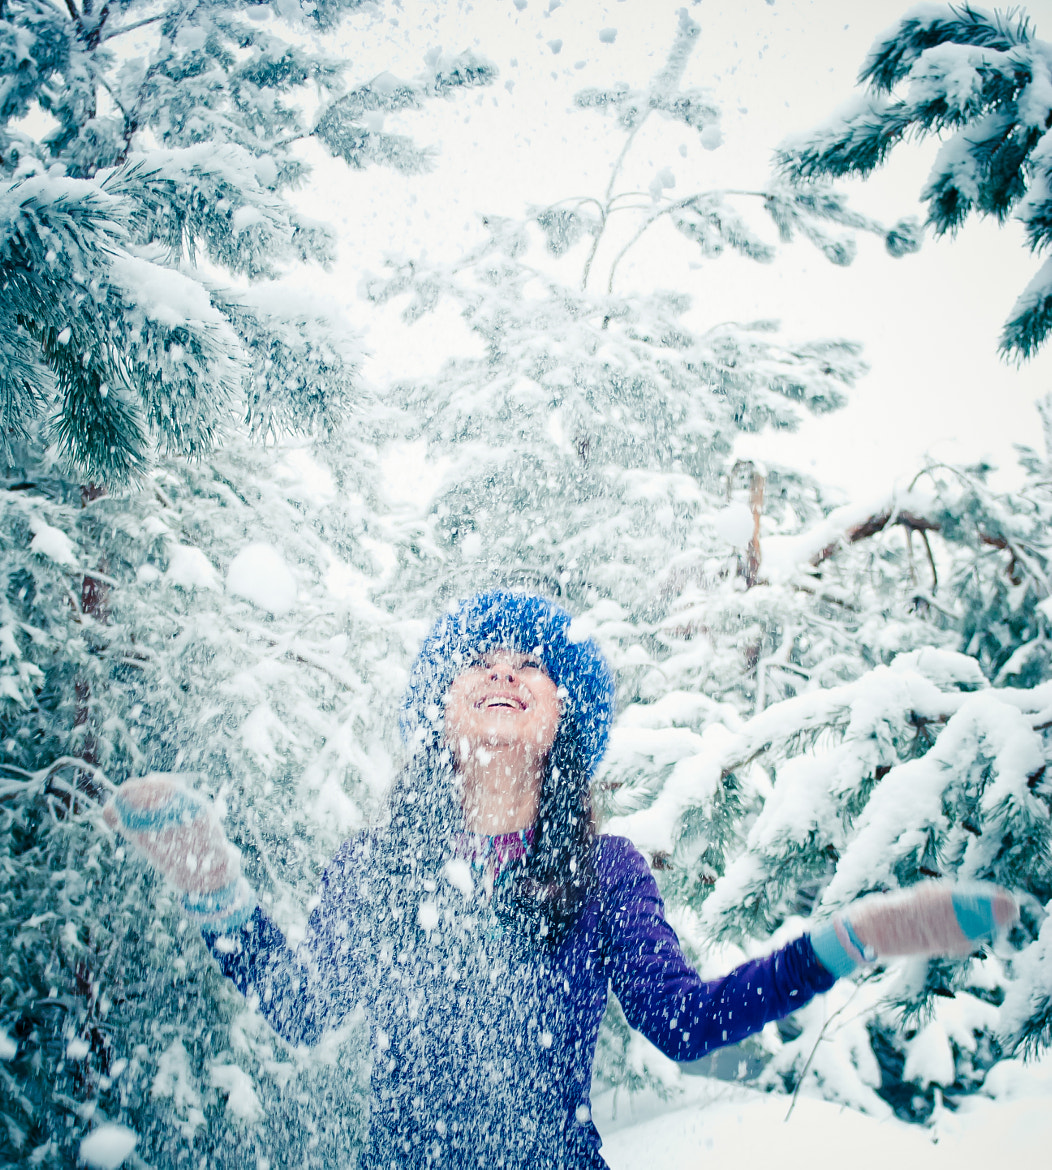 Photograph Untitled by Артём Ильченко on 500px